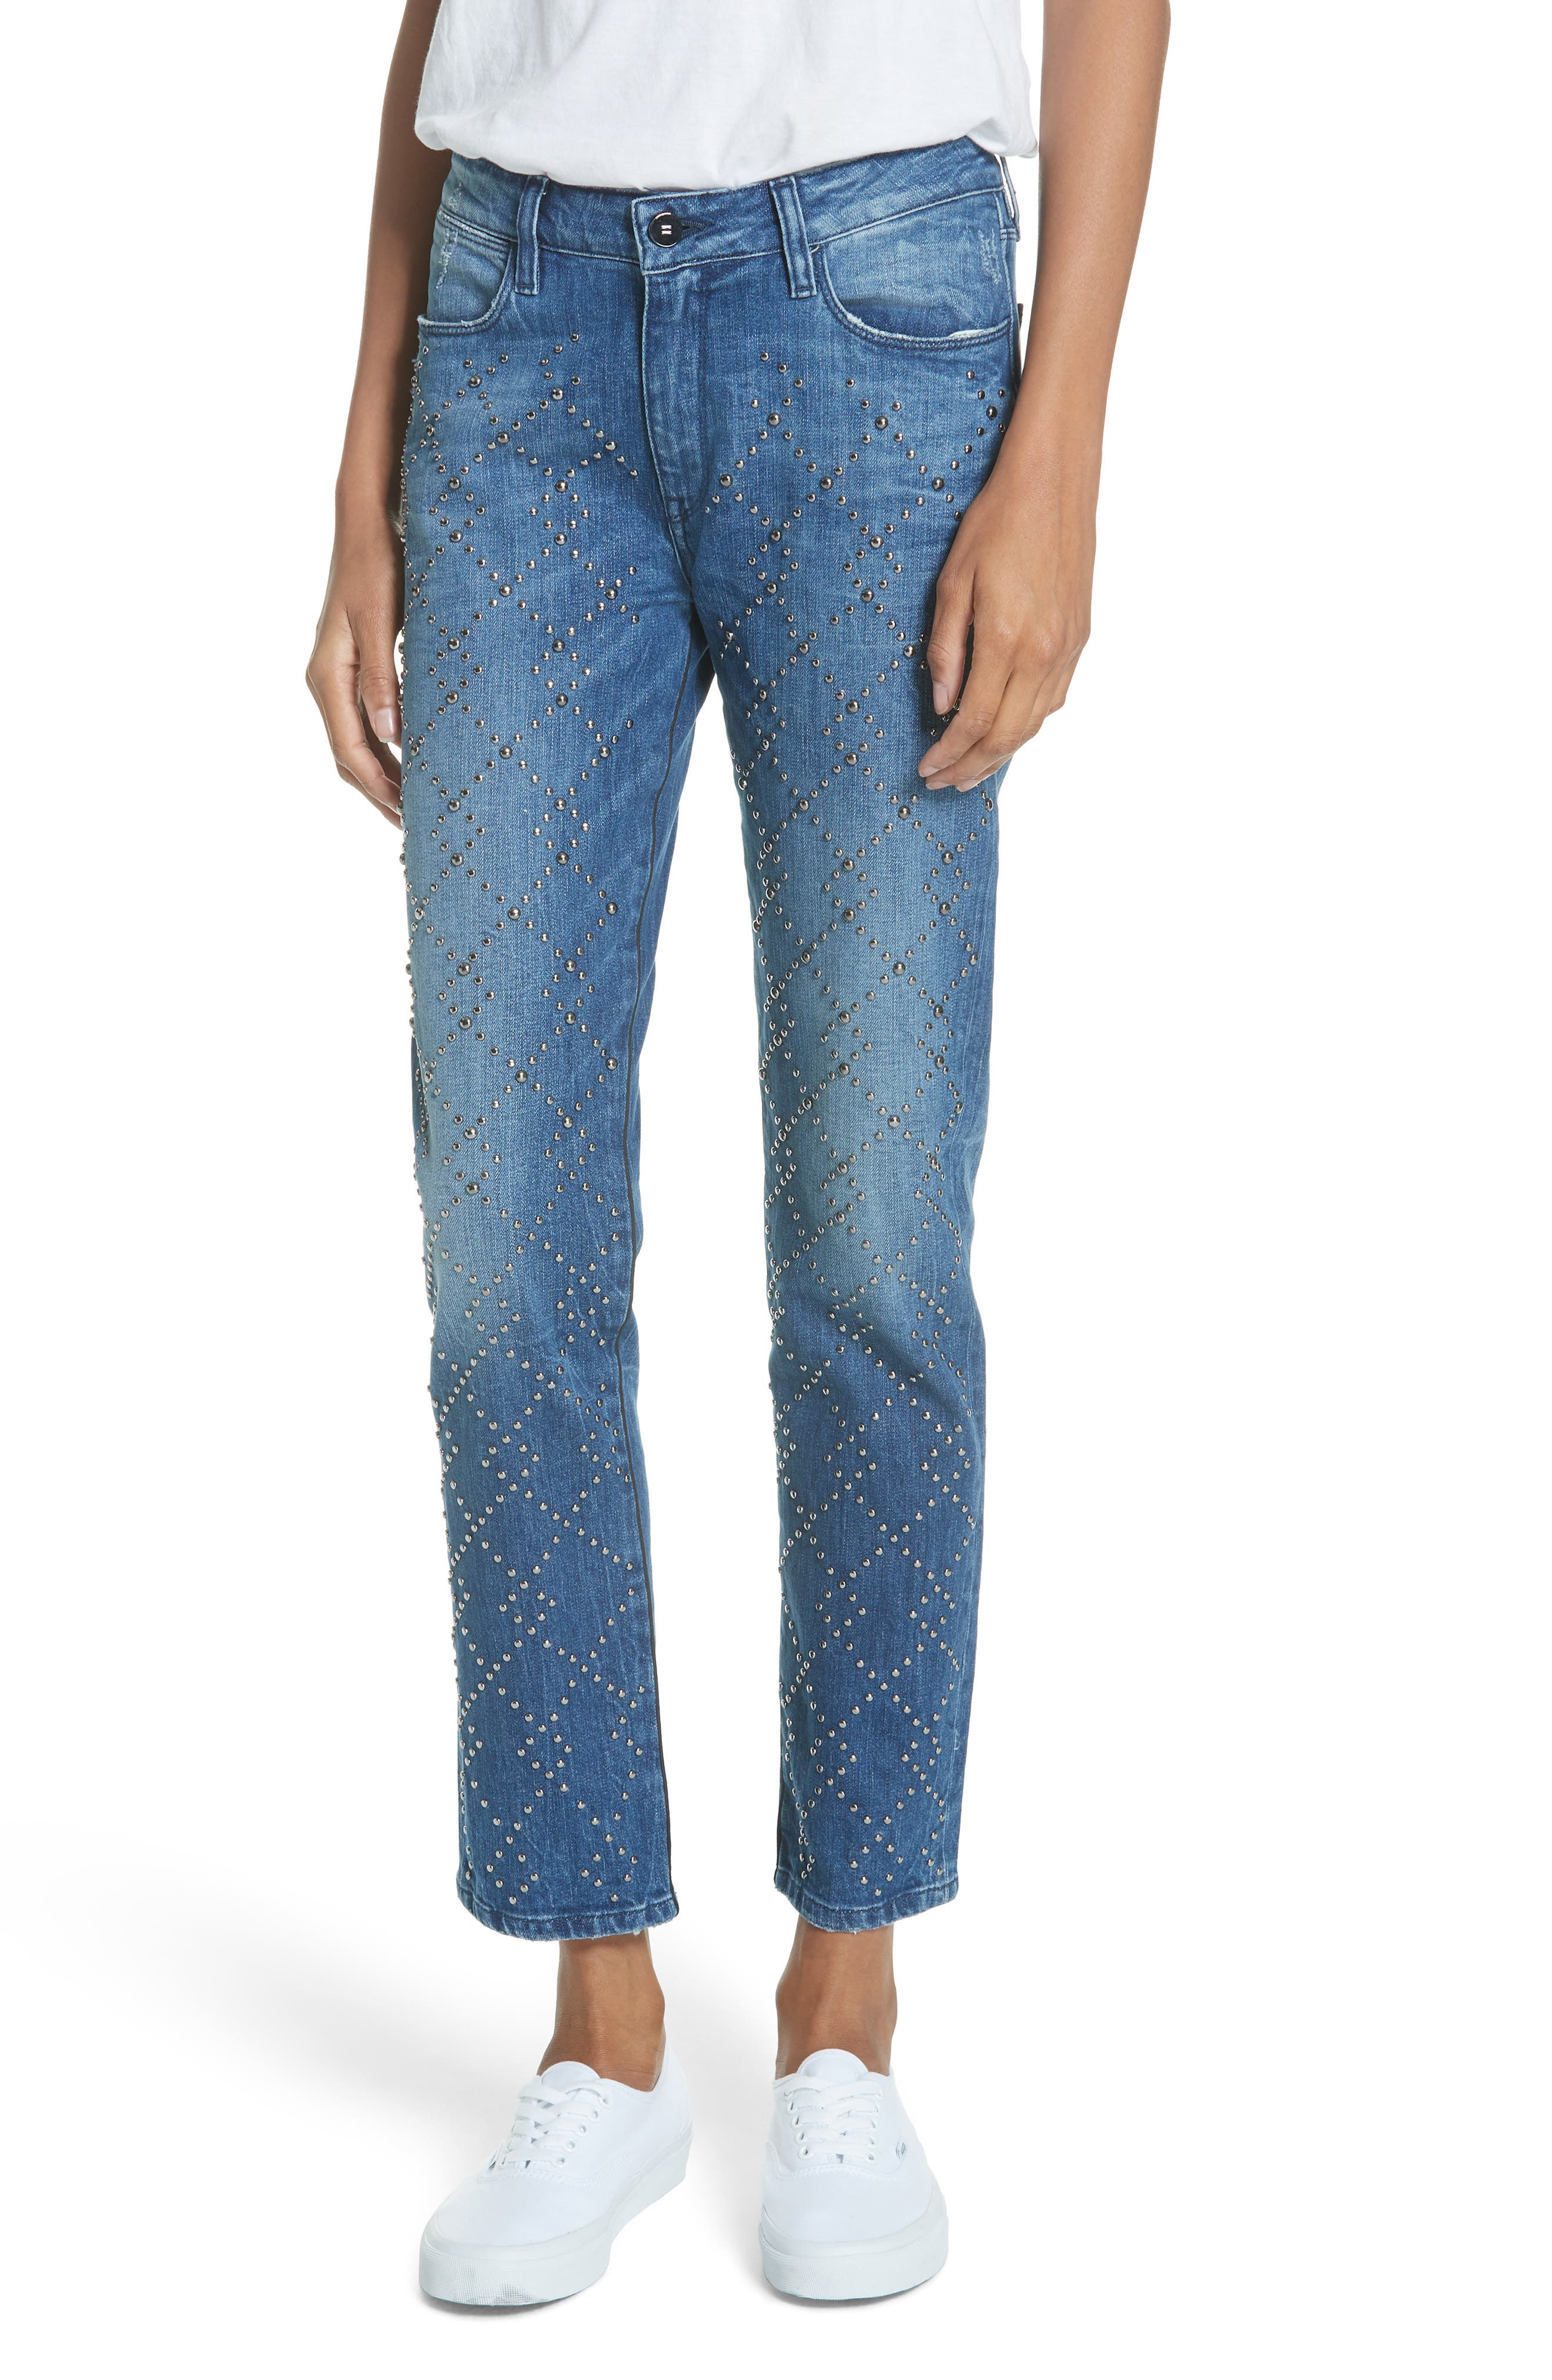 BROCKEN BOW Cale Lily Studded Ankle Straight Leg Jeans in Tokyo Blue